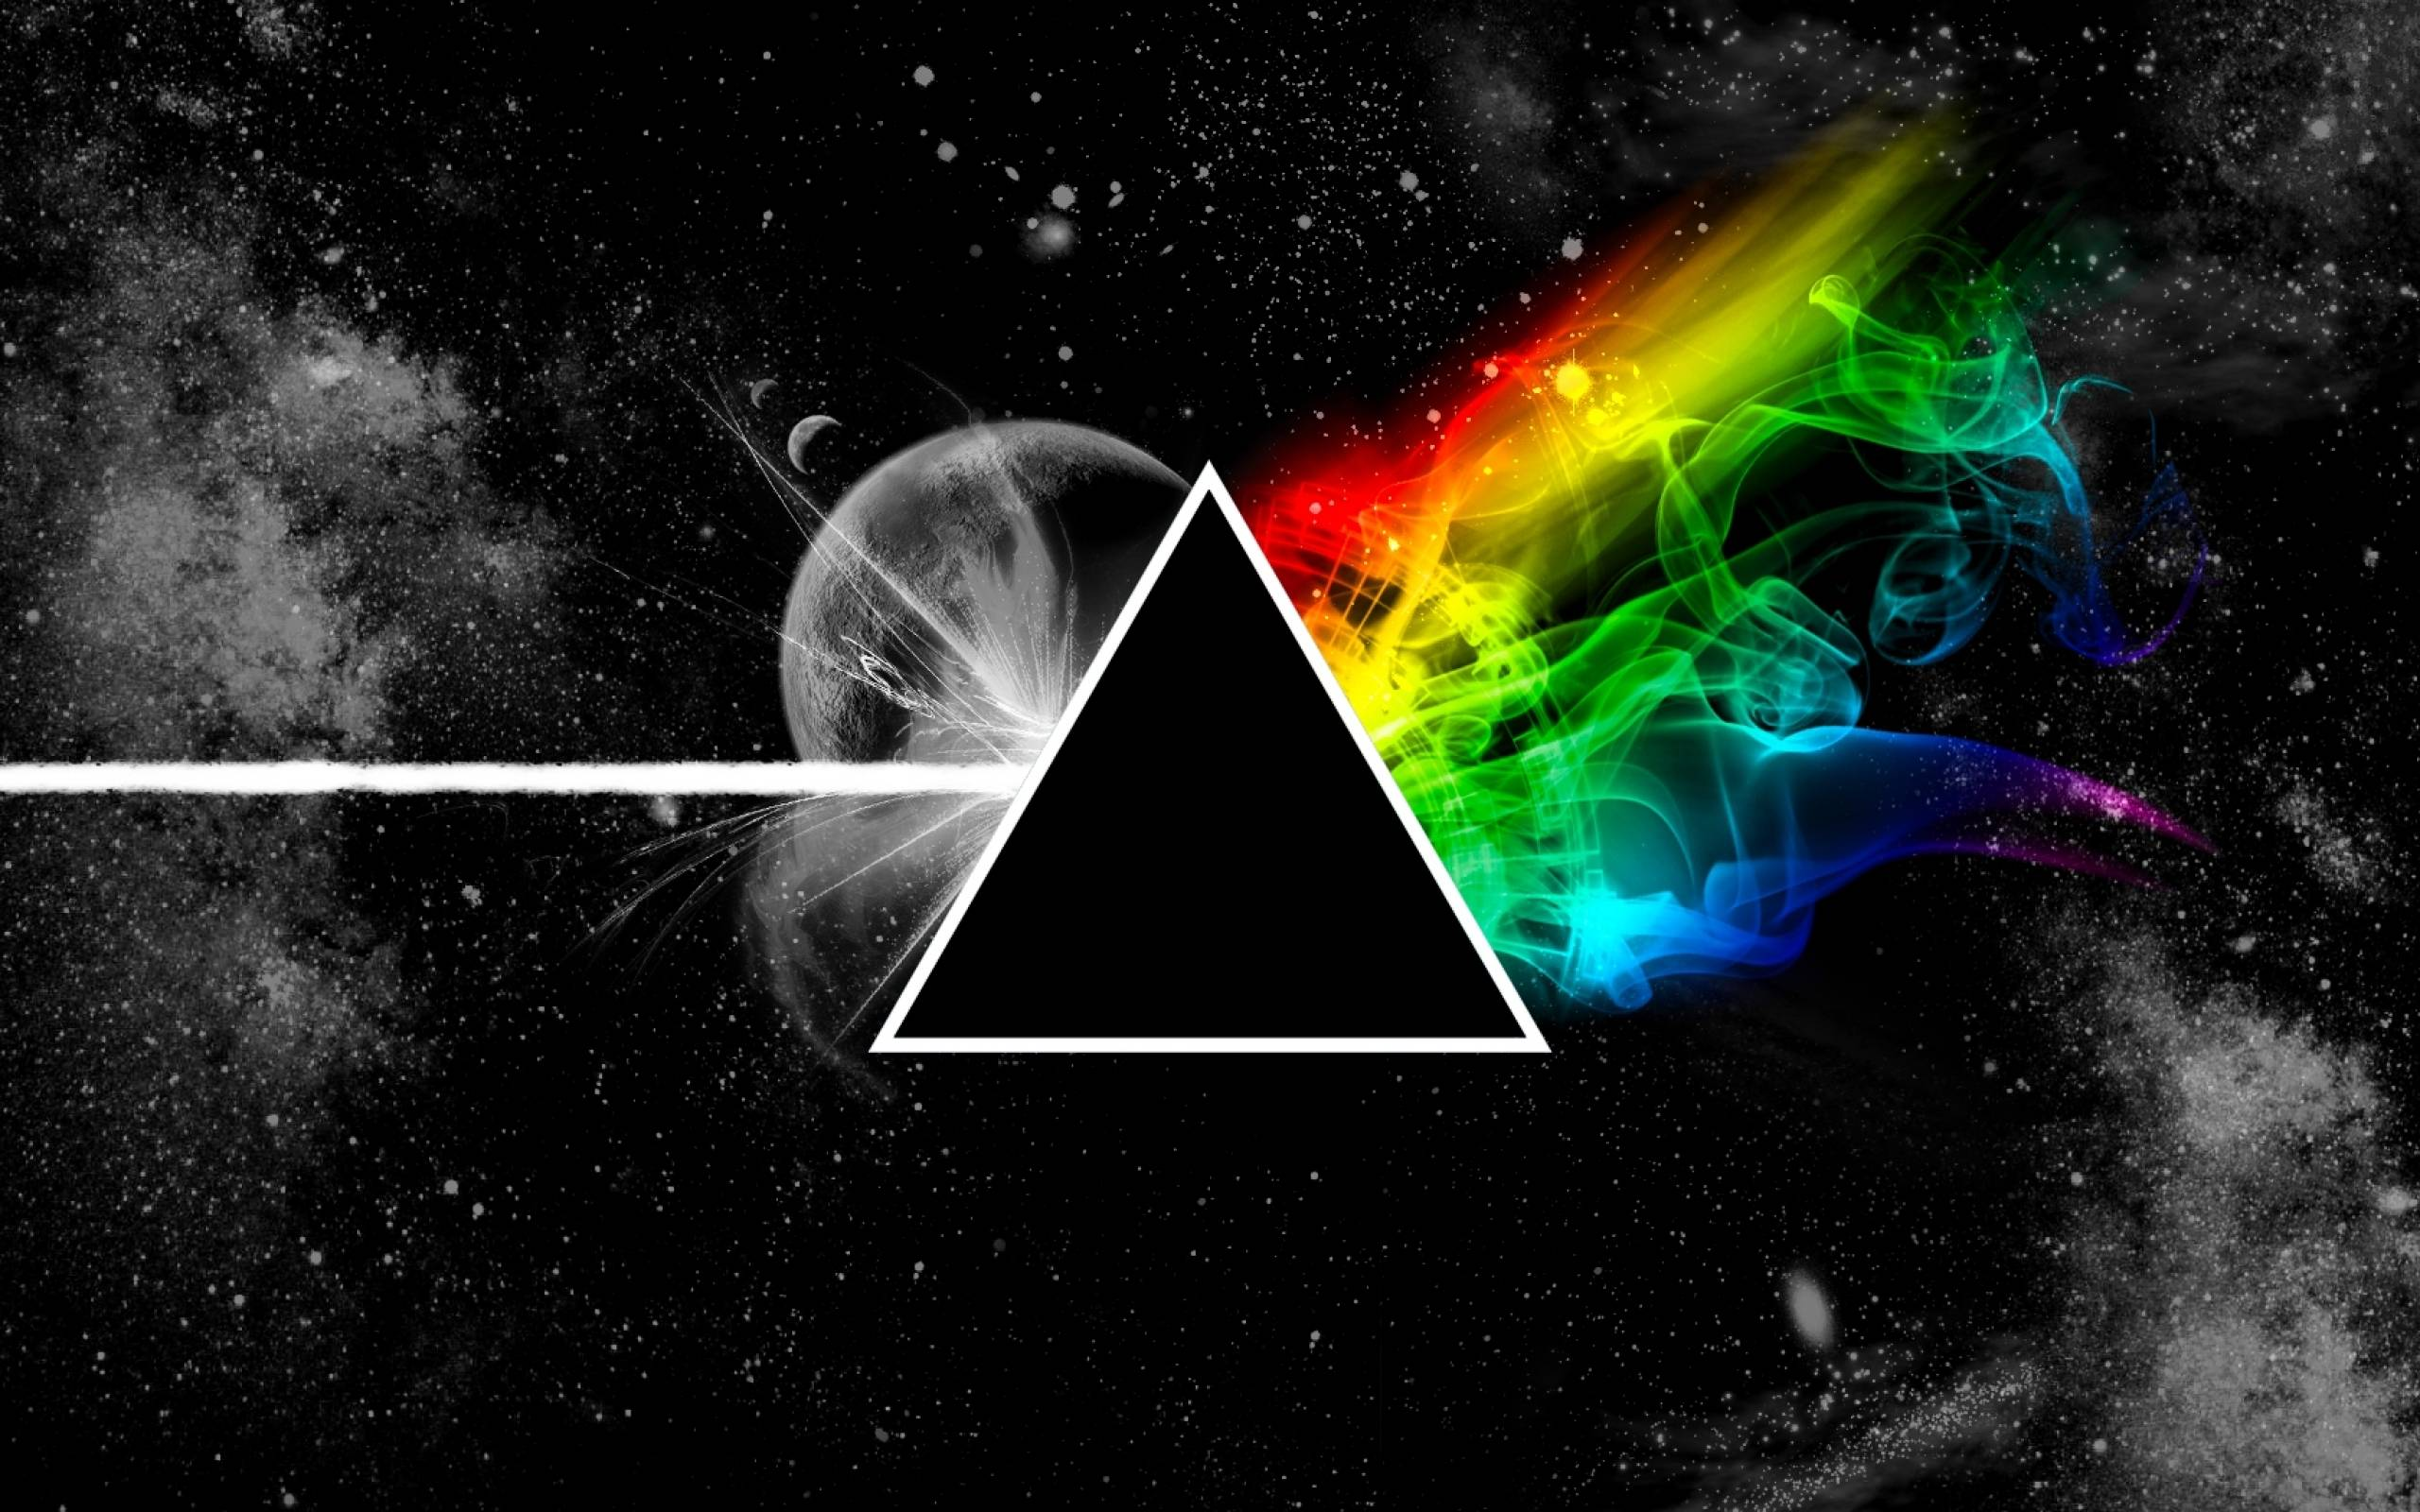 HD Wallpaper Pink Floyd